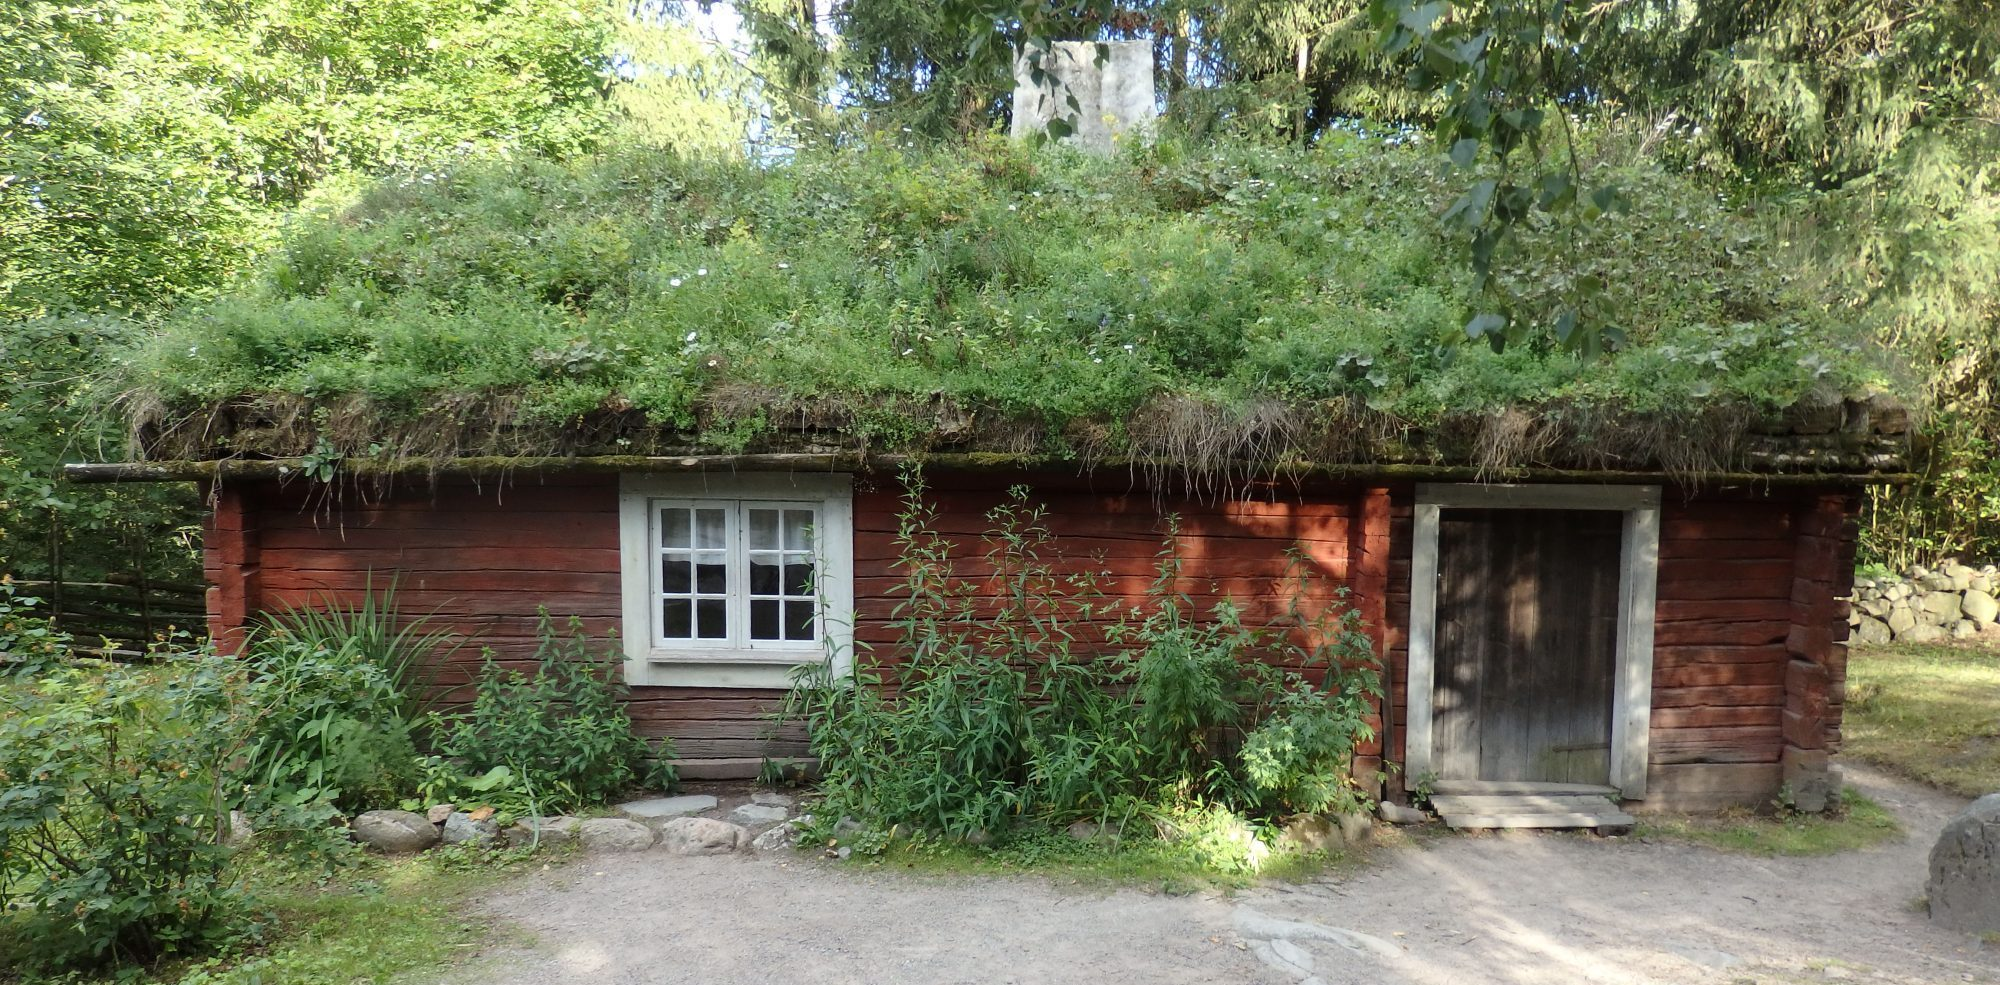 This cottage from the early 1800s comes from Smaland. It housed a soldier. Skansen, Stockholm, Sweden